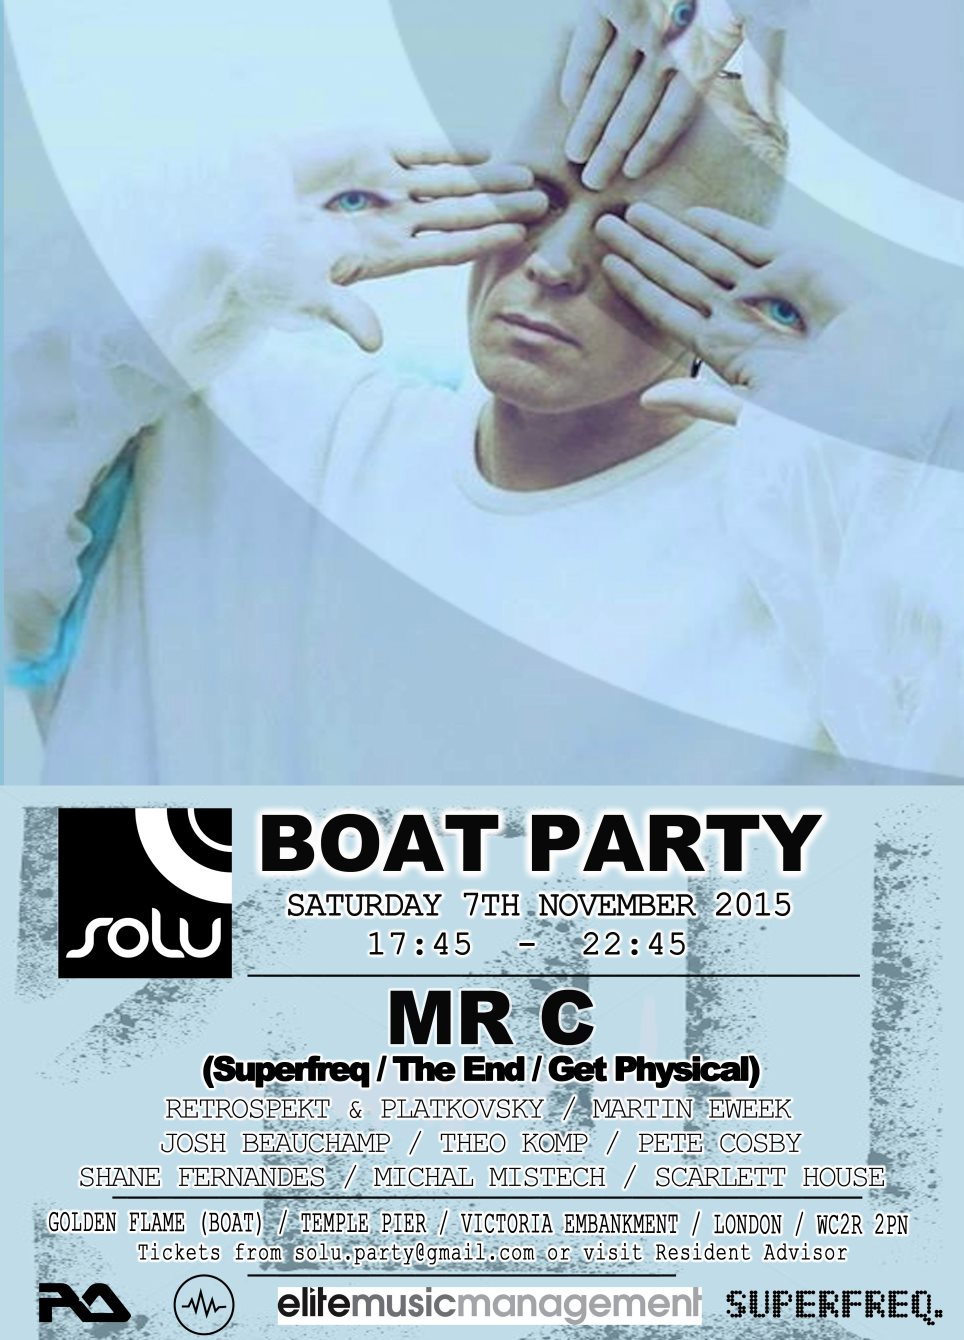 Ra Solu Boat Party With Mr C At Temple Pier London 2015